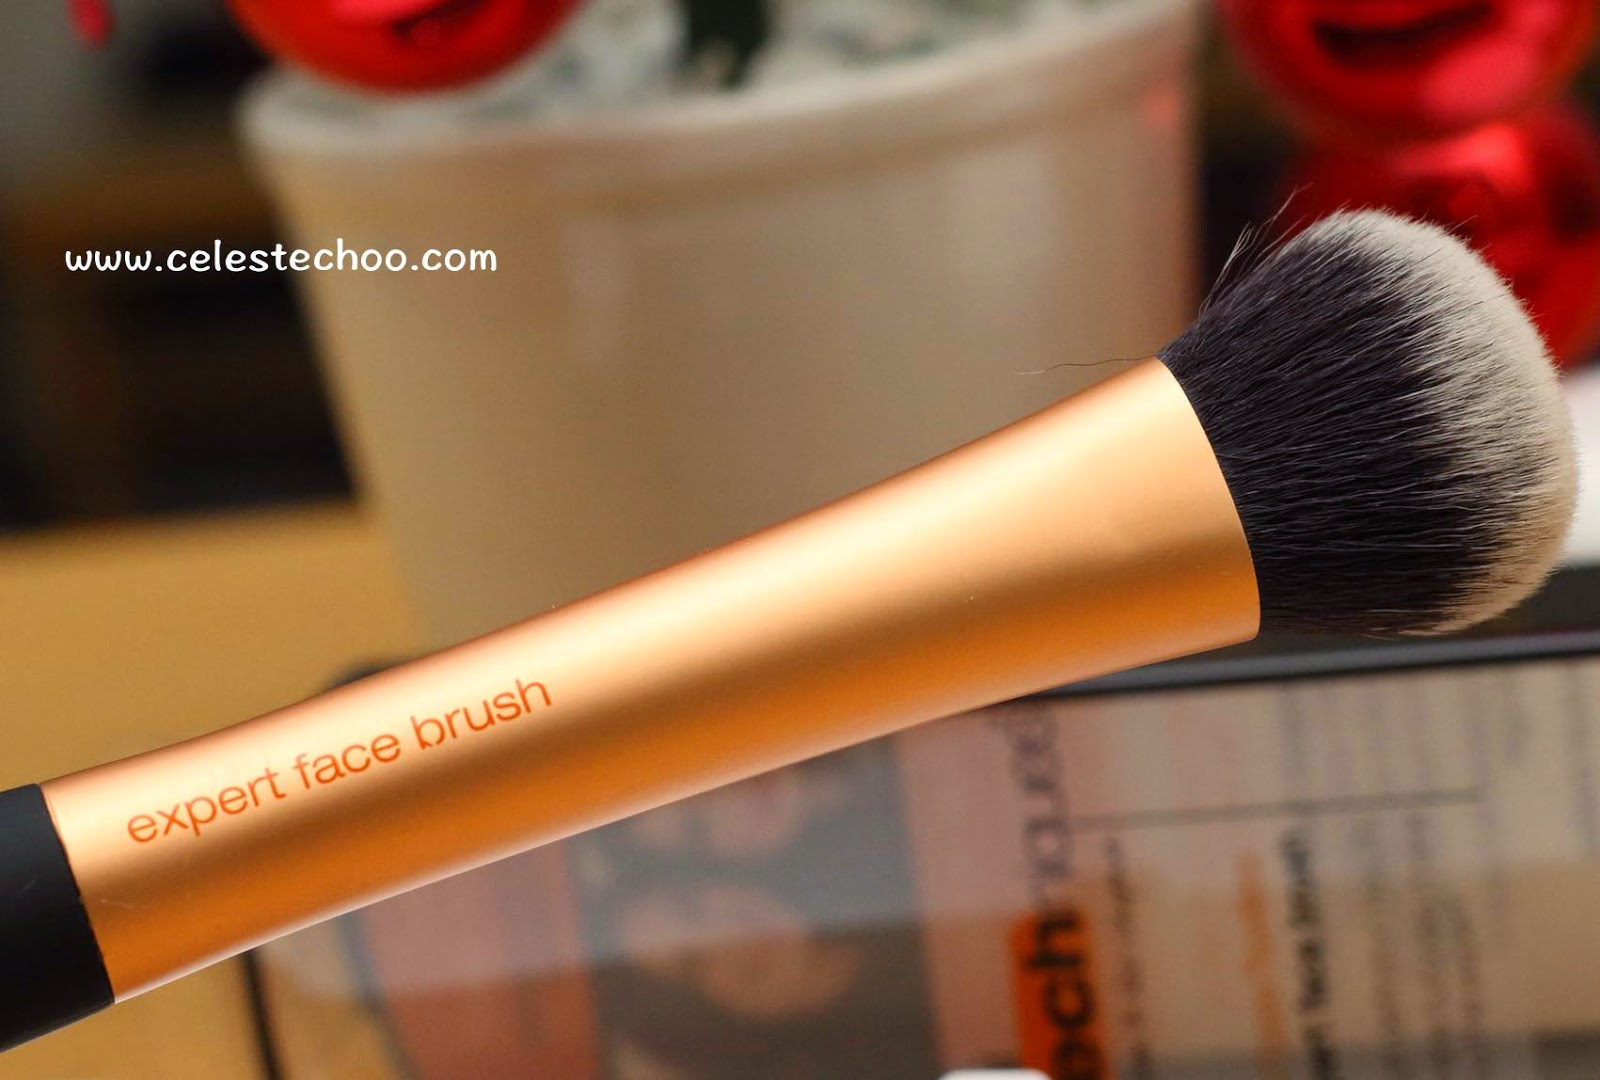 real-makeup-techniques-expert-face-brush